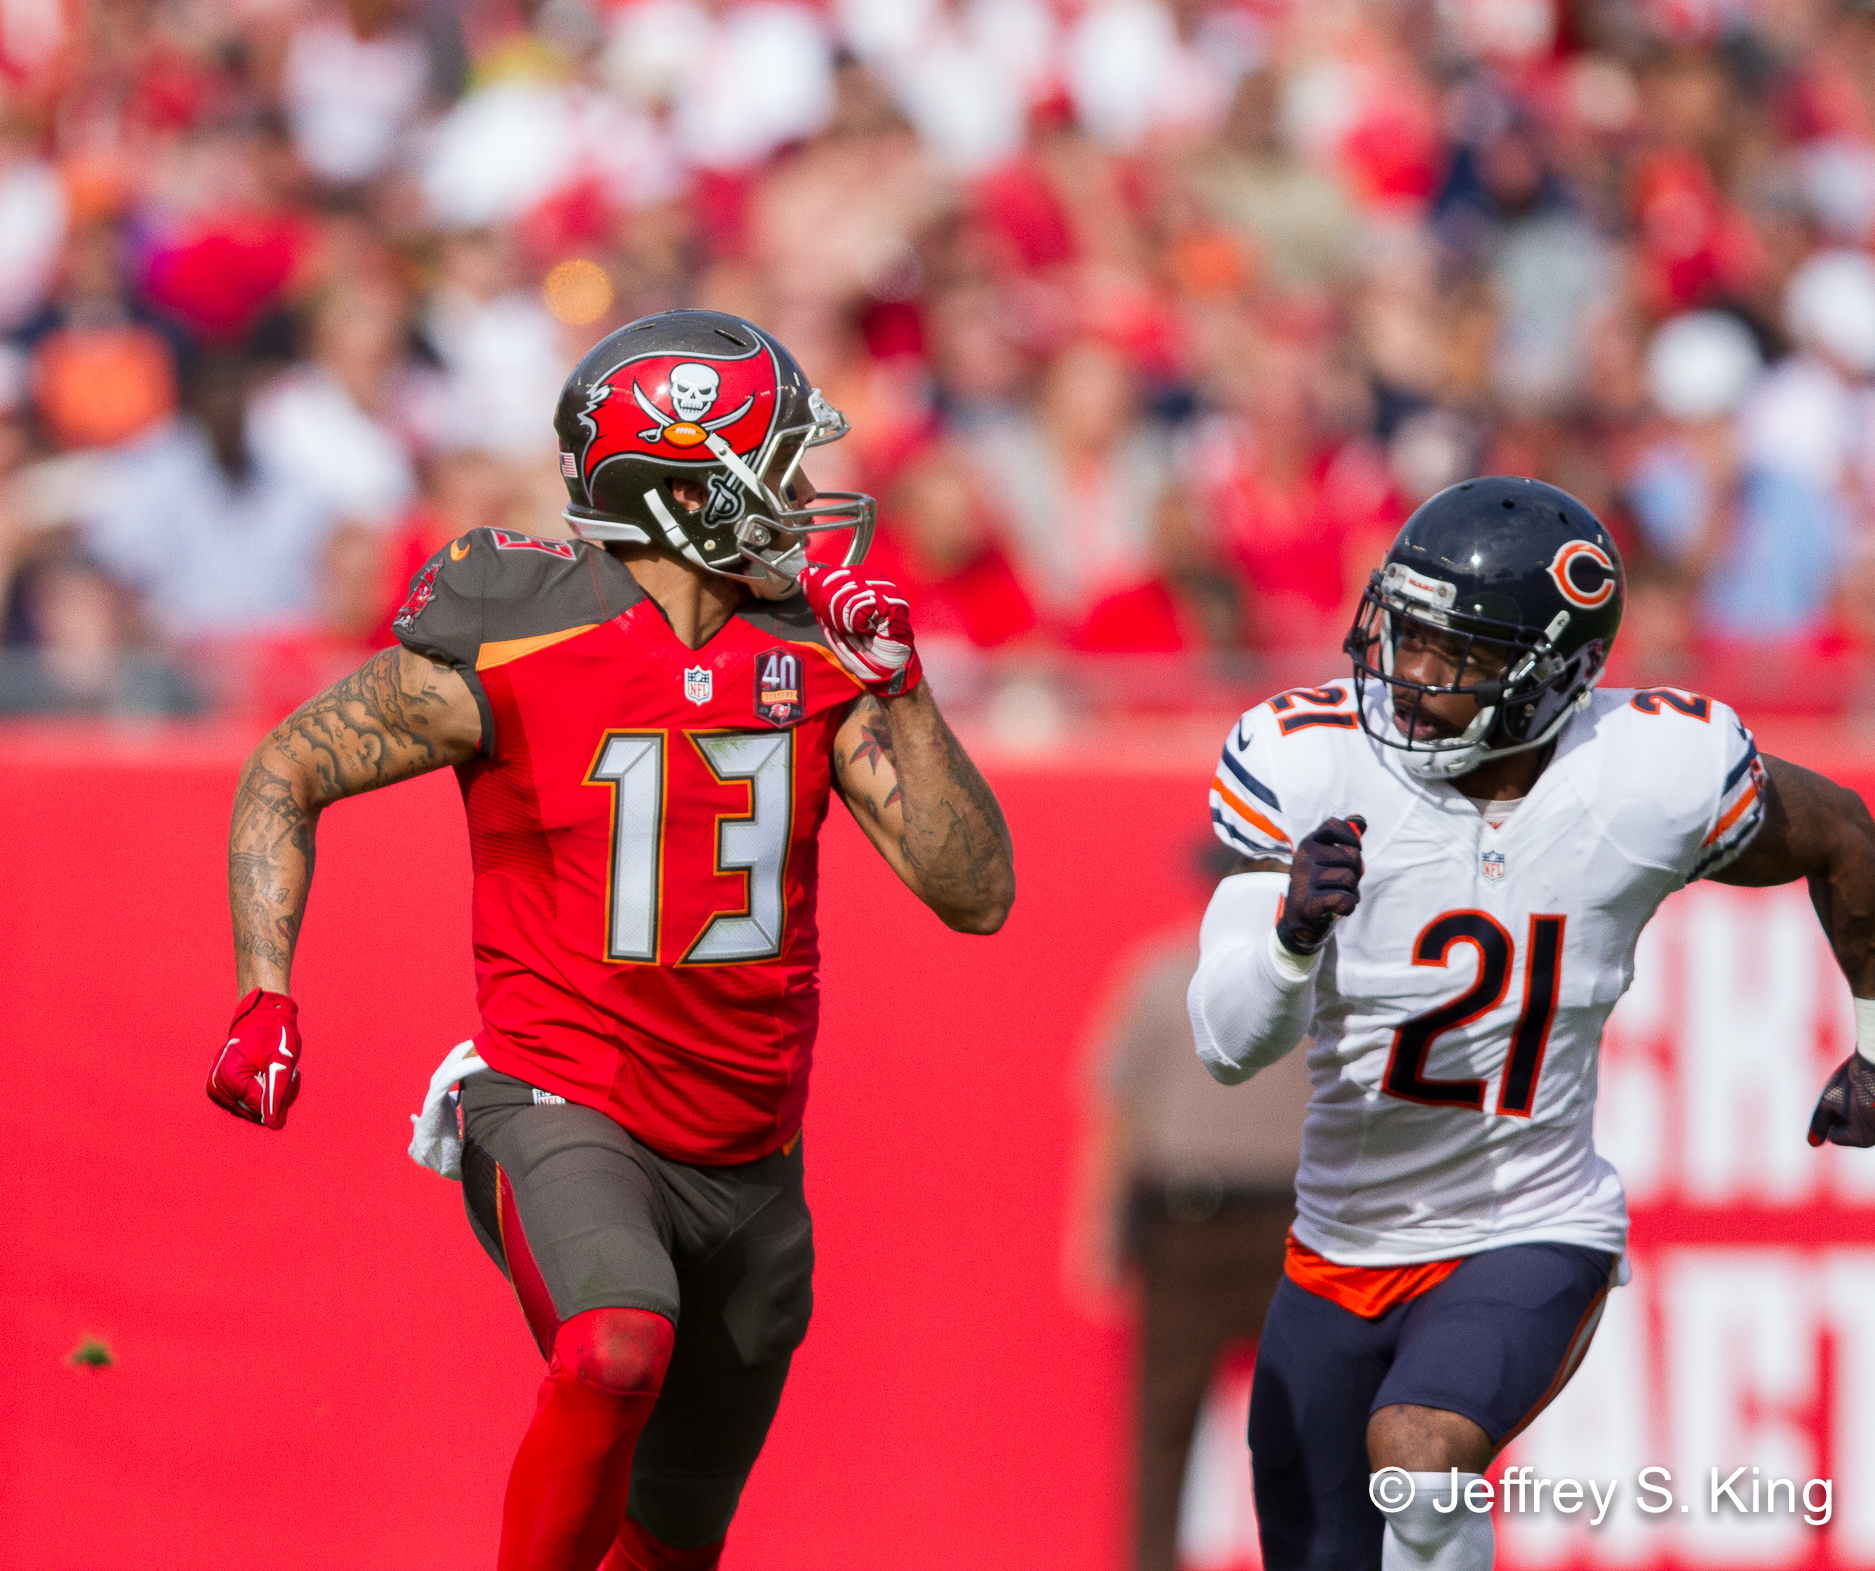 Evans led the NFL in dropped passes a year ago./JEFFREY S. KING